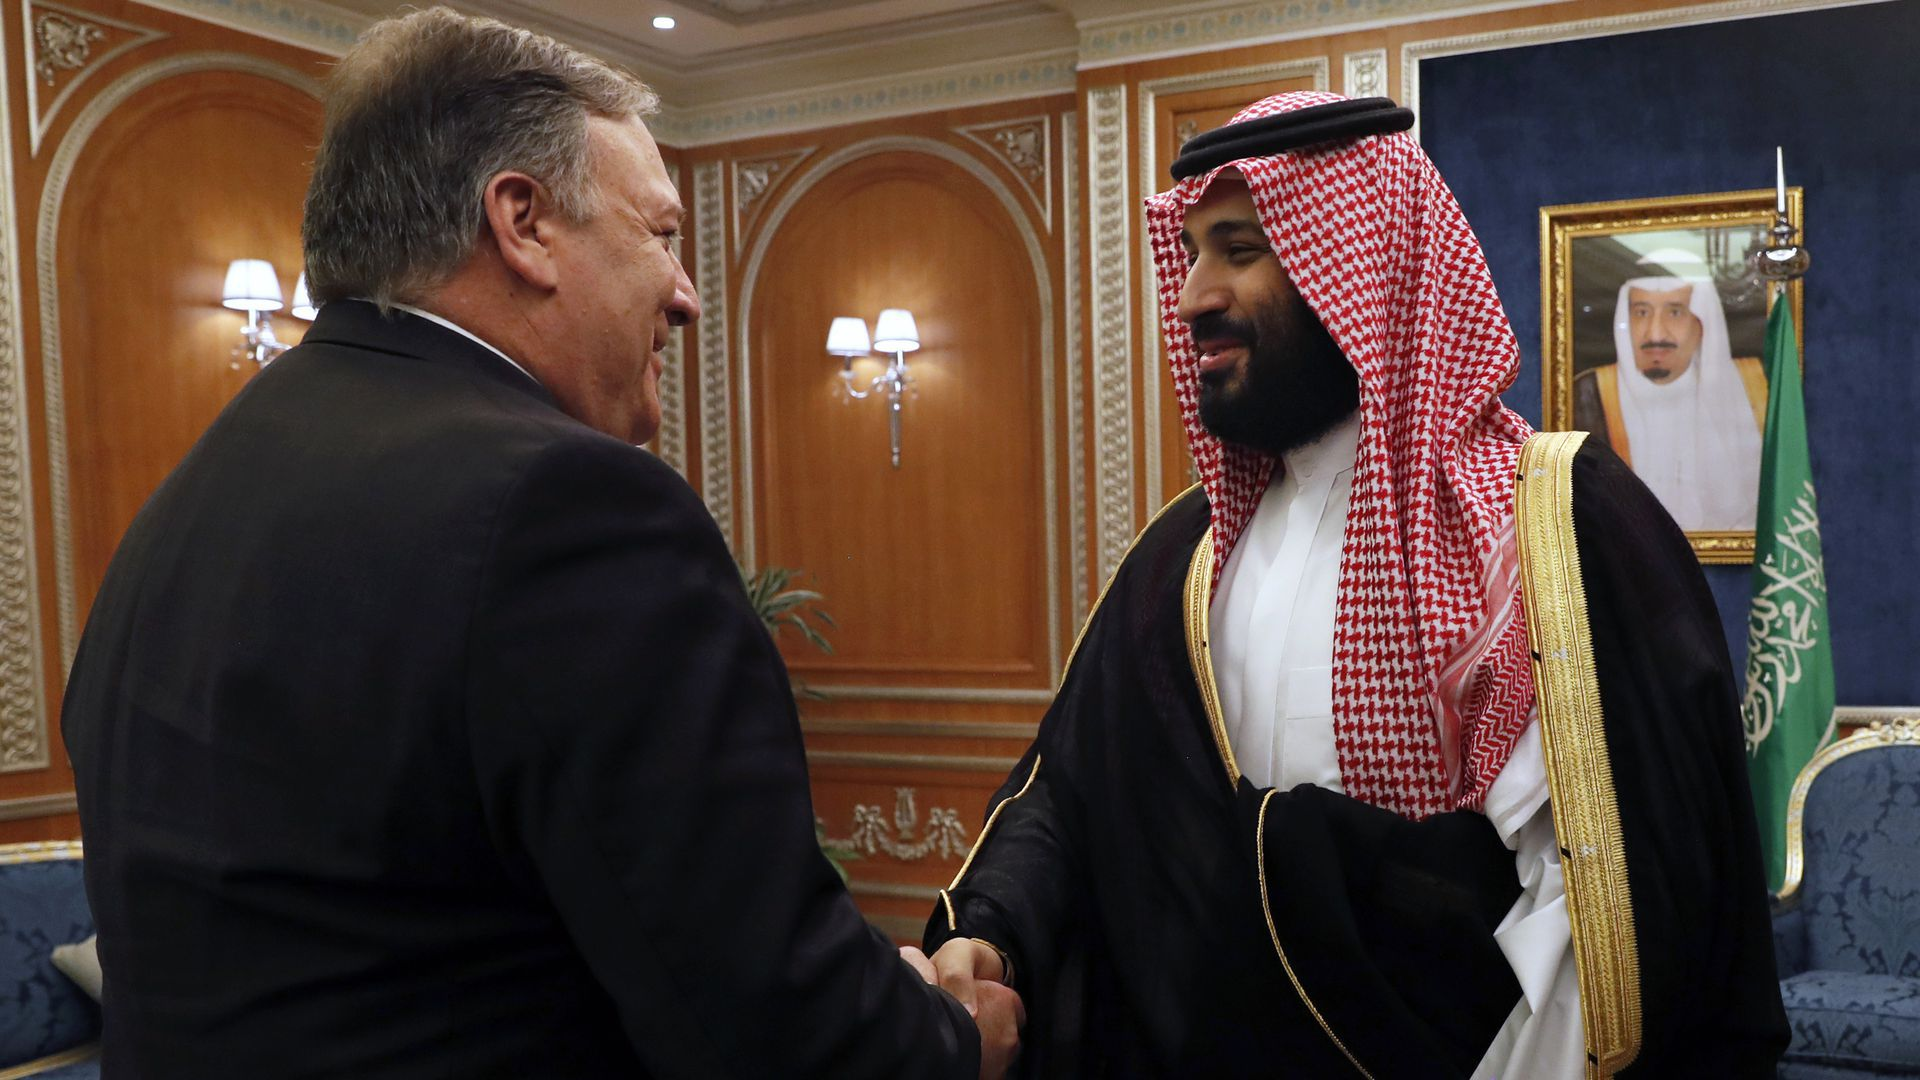 Sec. of State Mike Pompeo greets Mohammed bin Salman